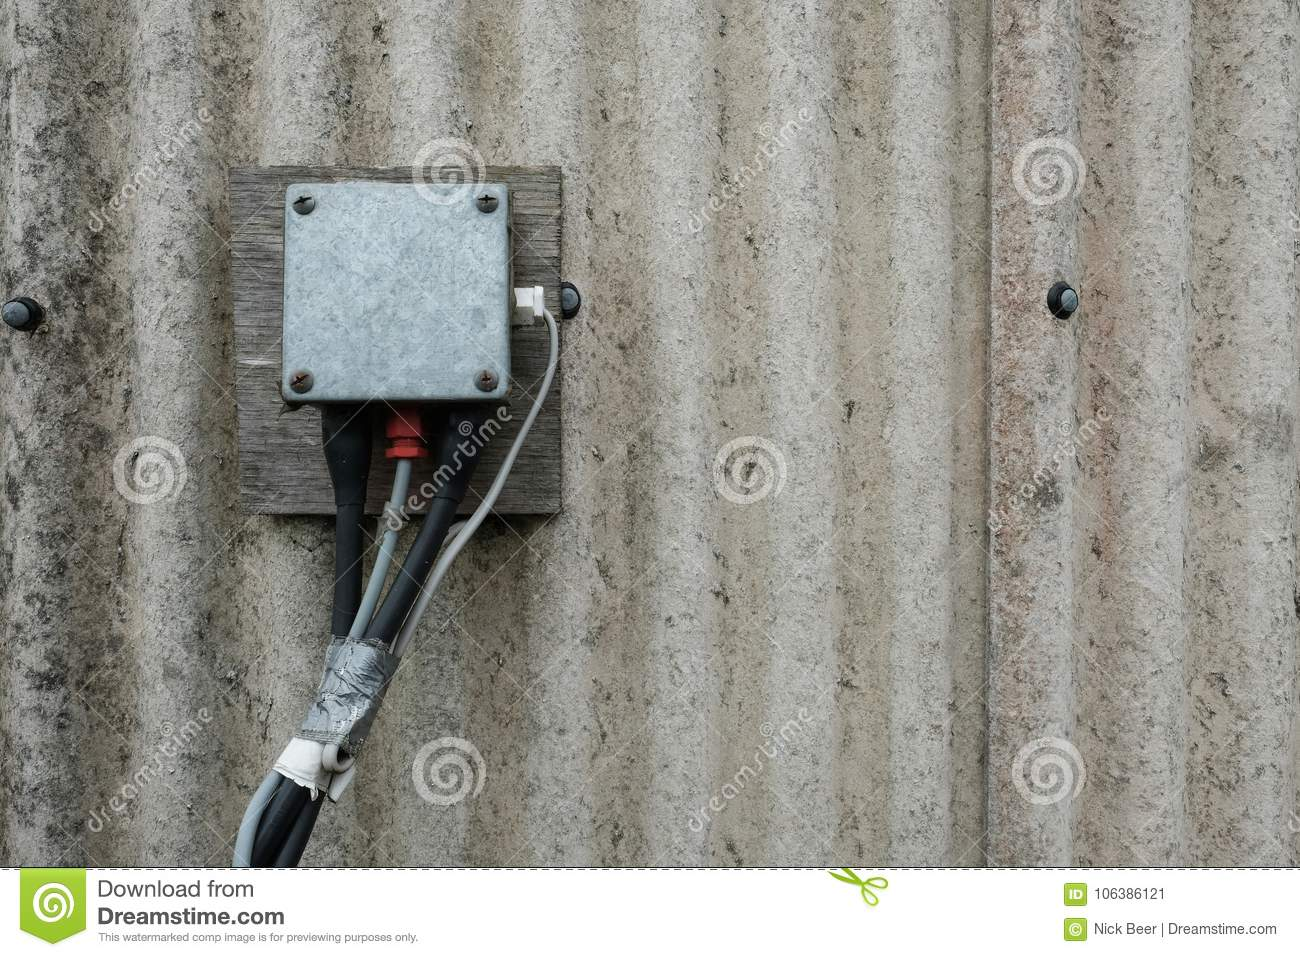 Detail Of An Electrical Junction Box And Wiring Seen On Asbestos Clad Shed